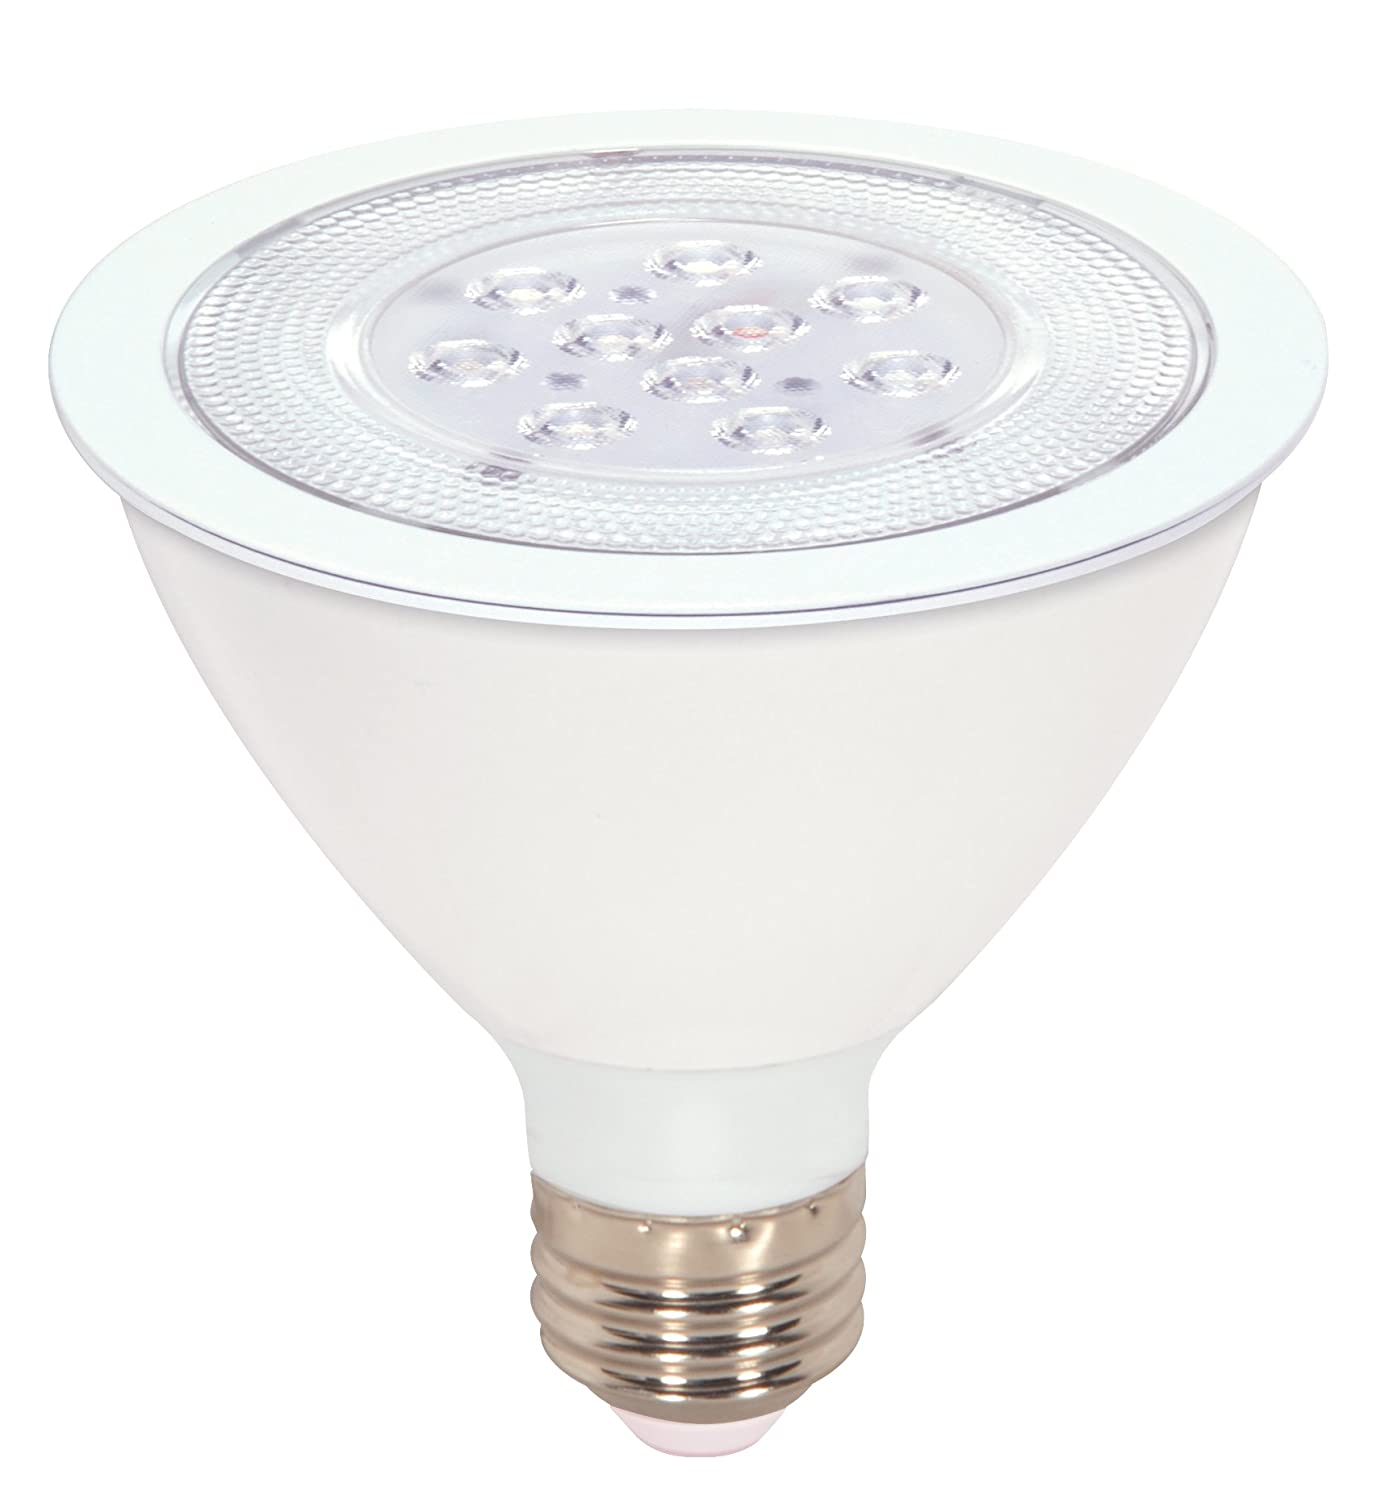 of light lighting can les led lowenergie type bulbs bulb